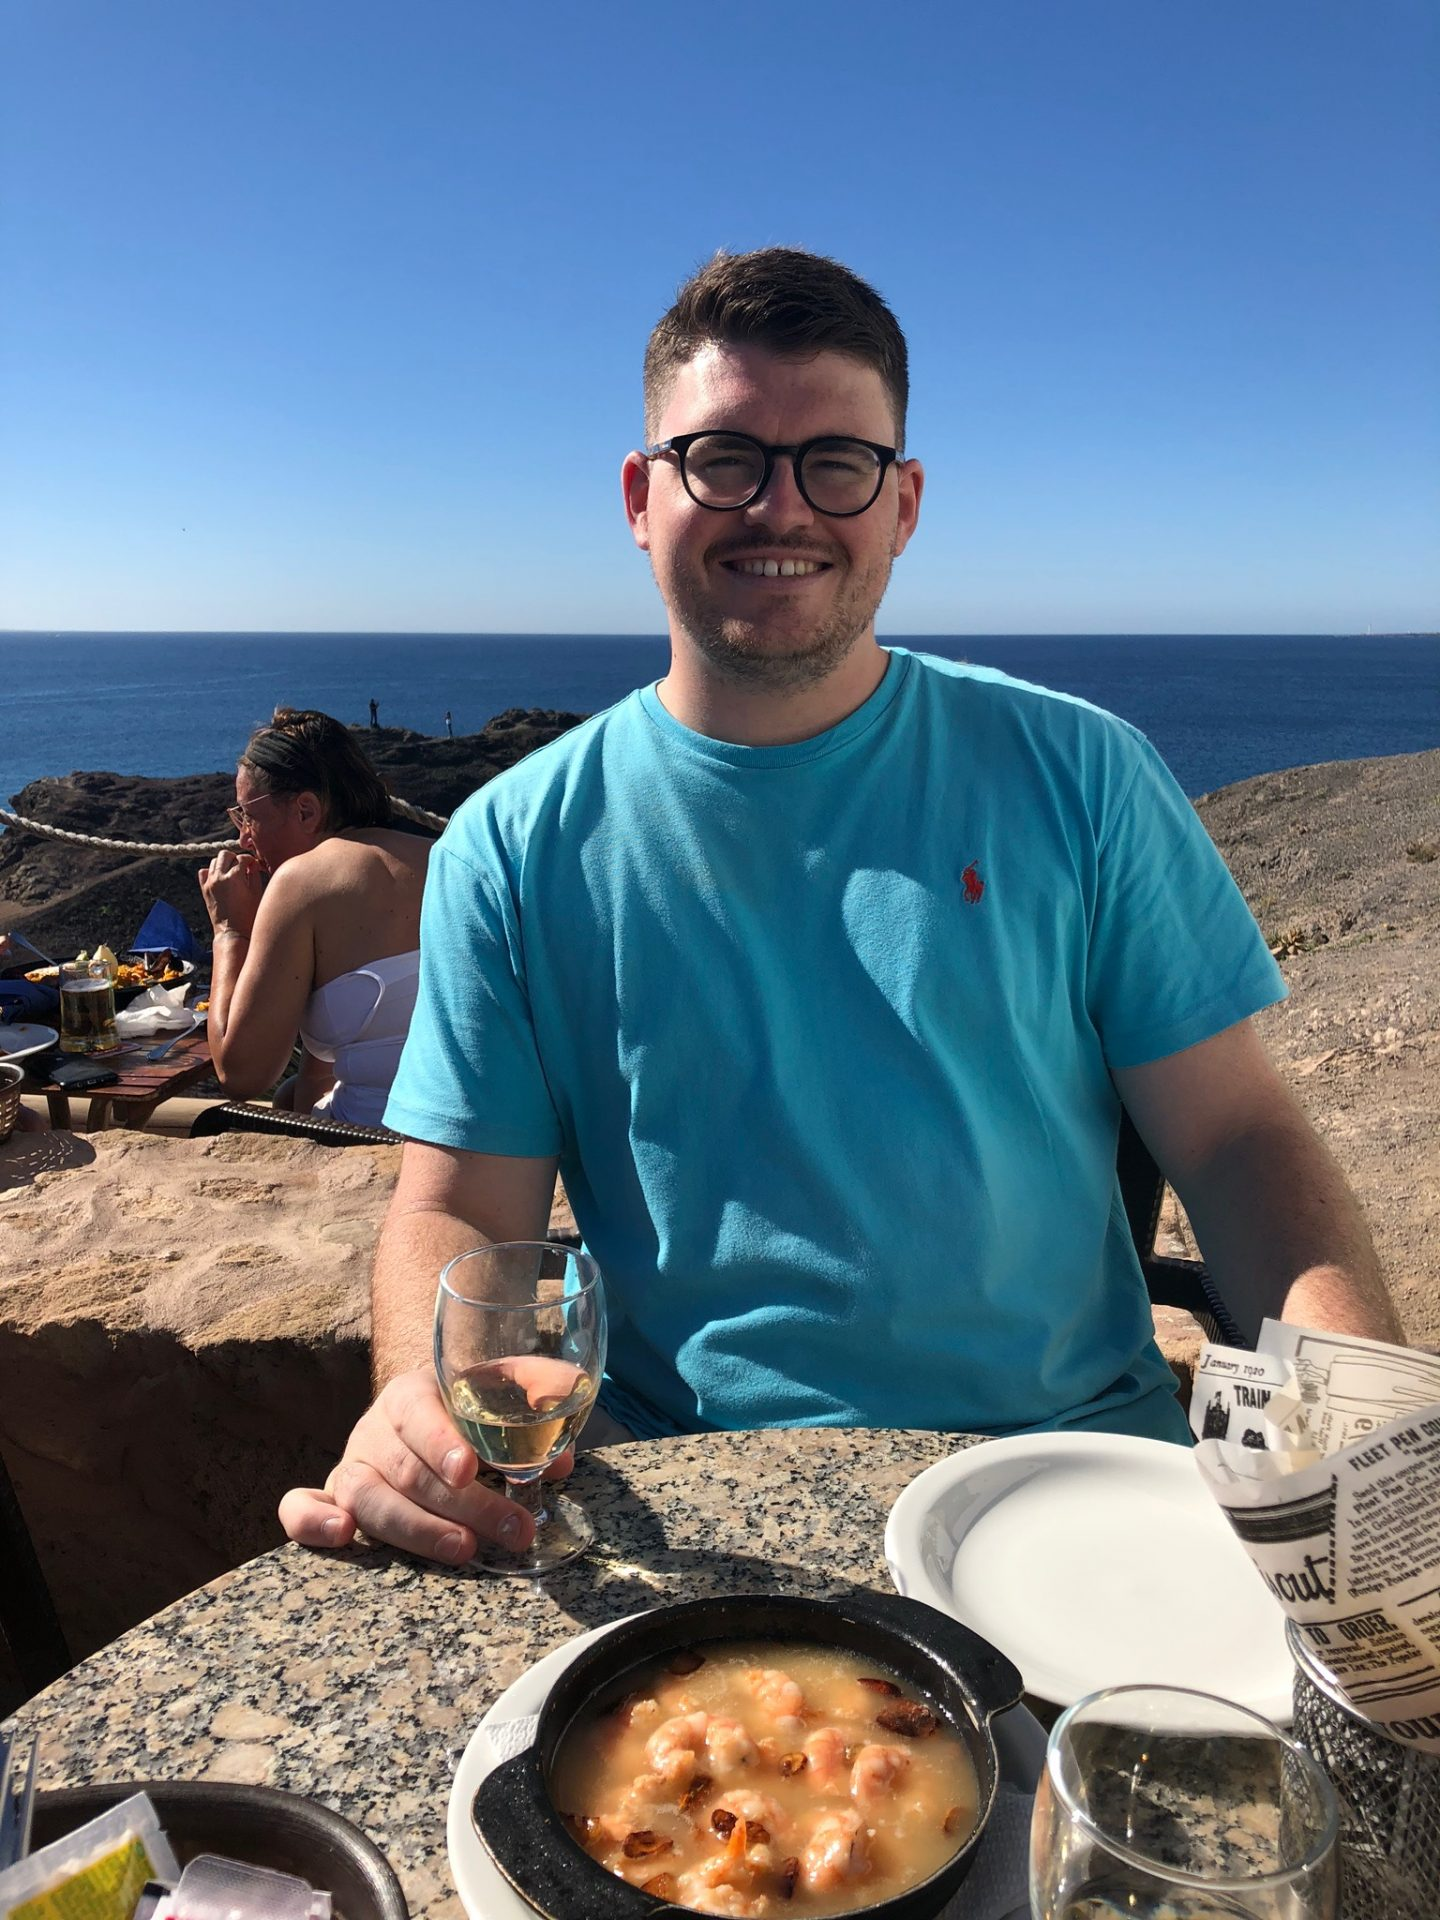 Man with glass of wine and garlic prawns, blue sky behind and smiling directly at the camera